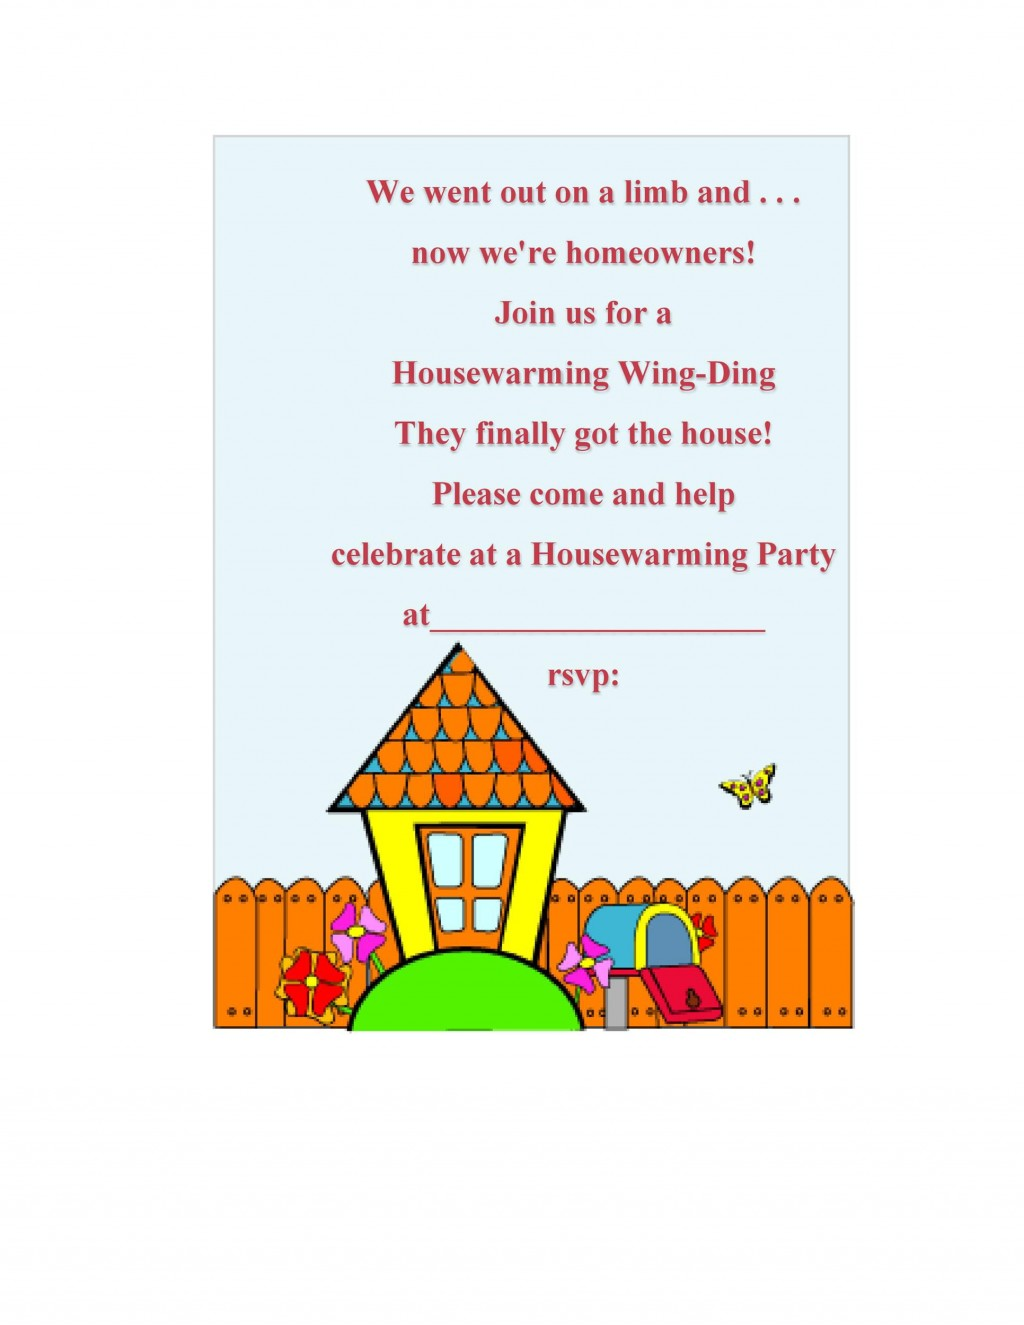 008 Top Housewarming Party Invitation Template Image  Templates Free Download CardLarge